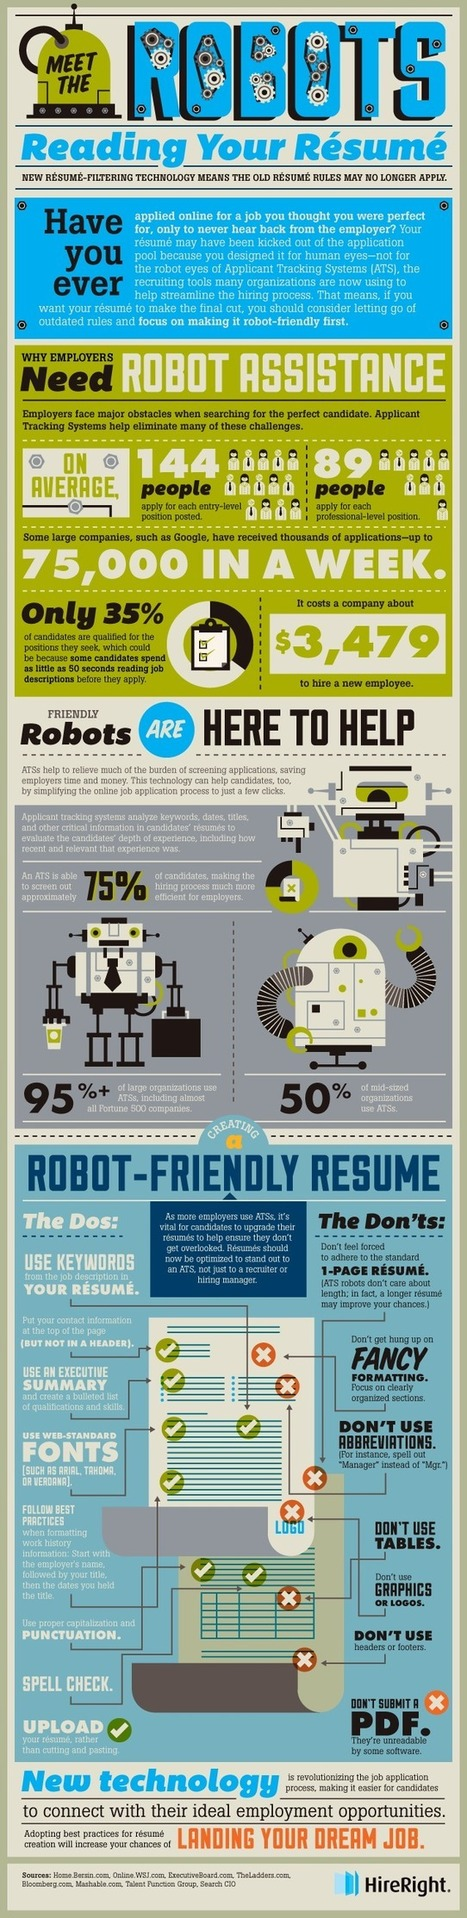 How to Create A Robot-Friendly Résumé to Land Your Dream Job | digital marketing strategy | Scoop.it